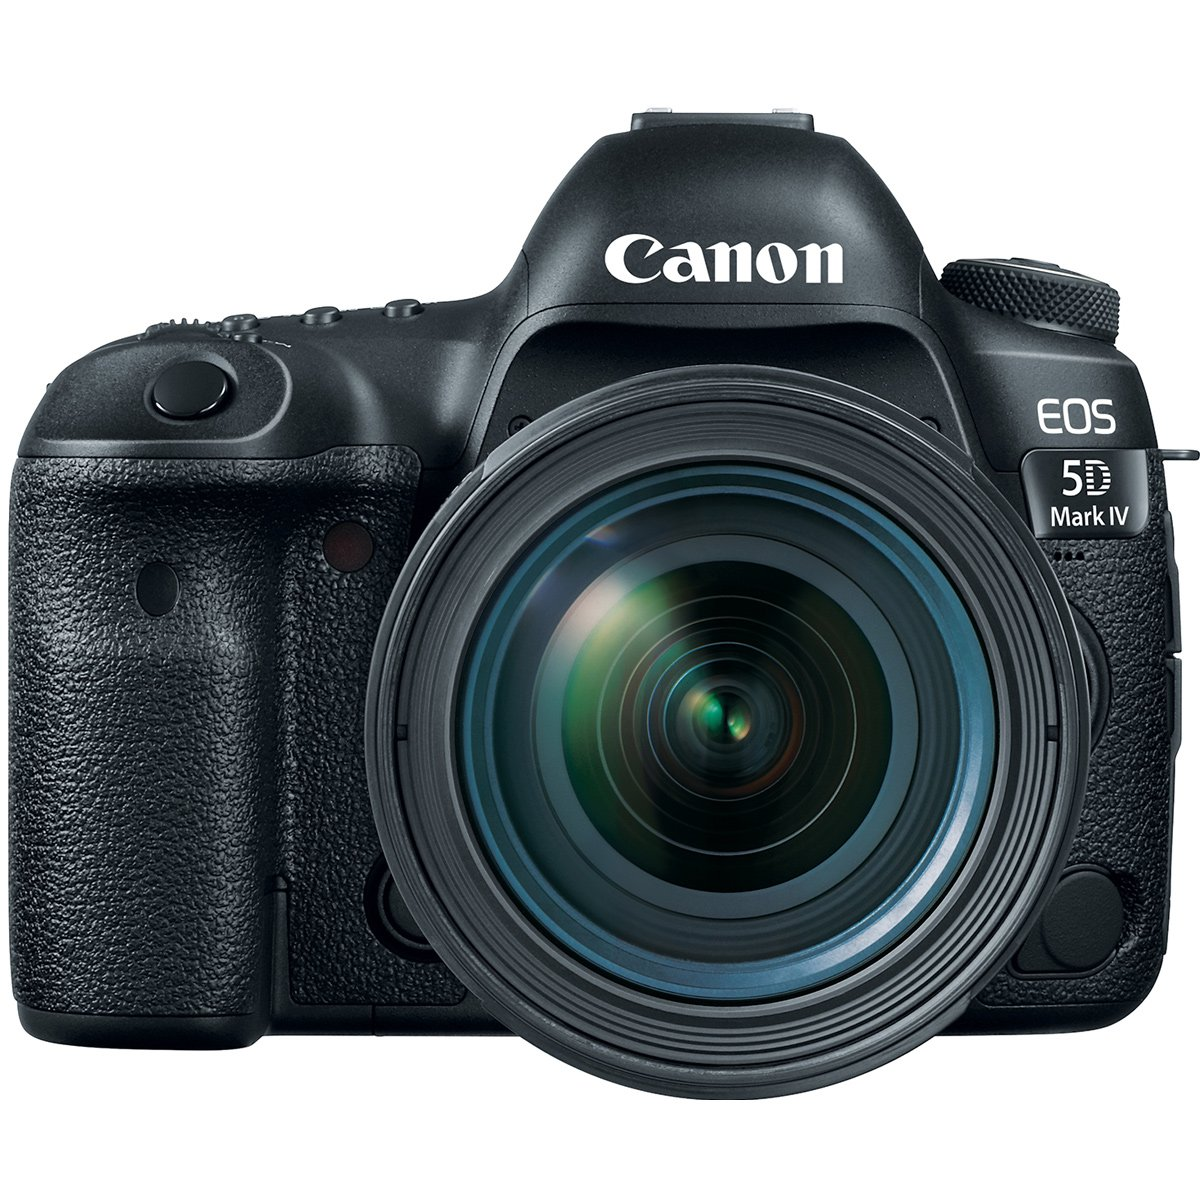 CANON EOS5D Mark IV DSLR Camera